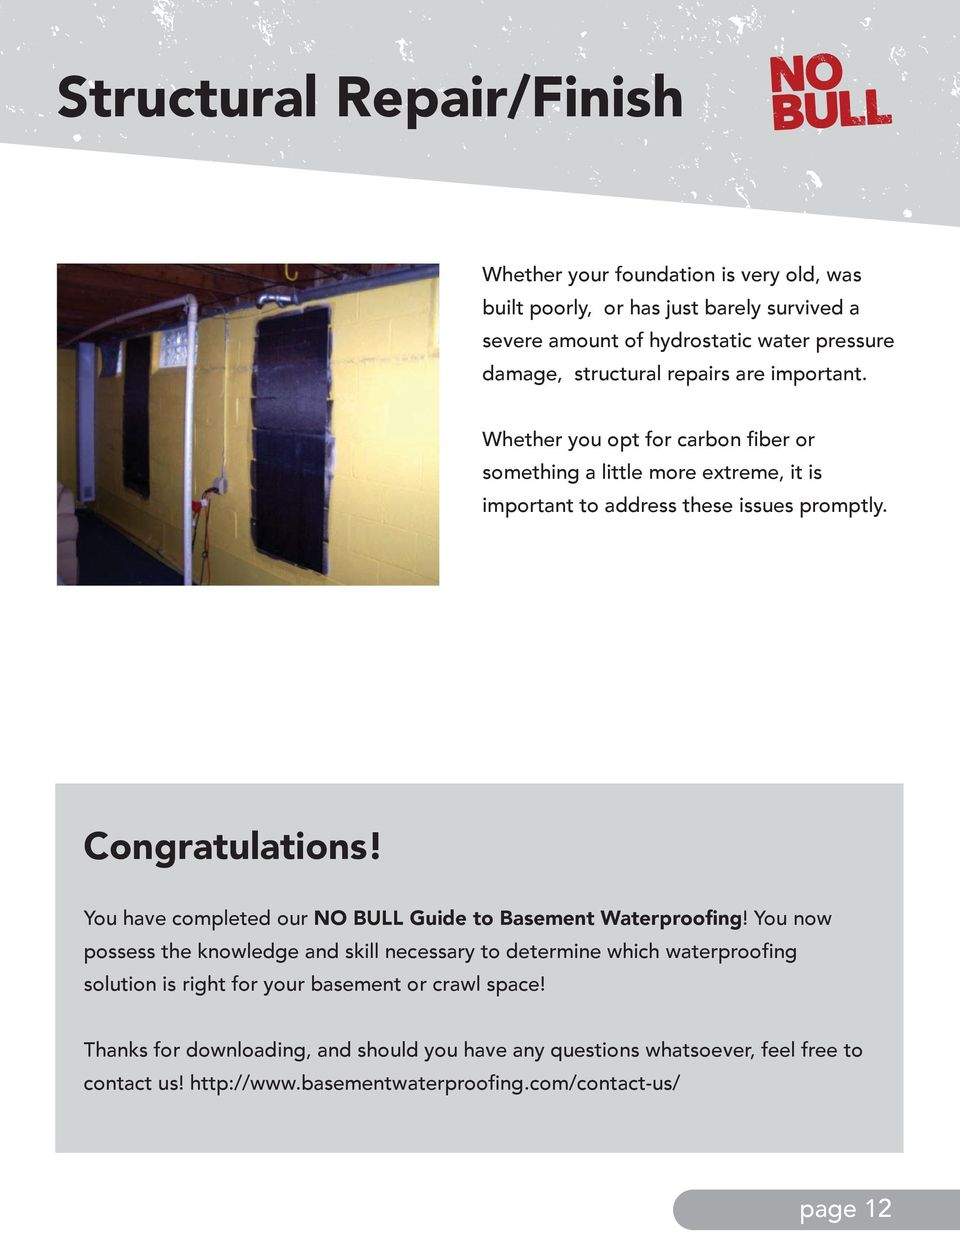 You have completed our NO BULL Guide to Basement Waterproofing!